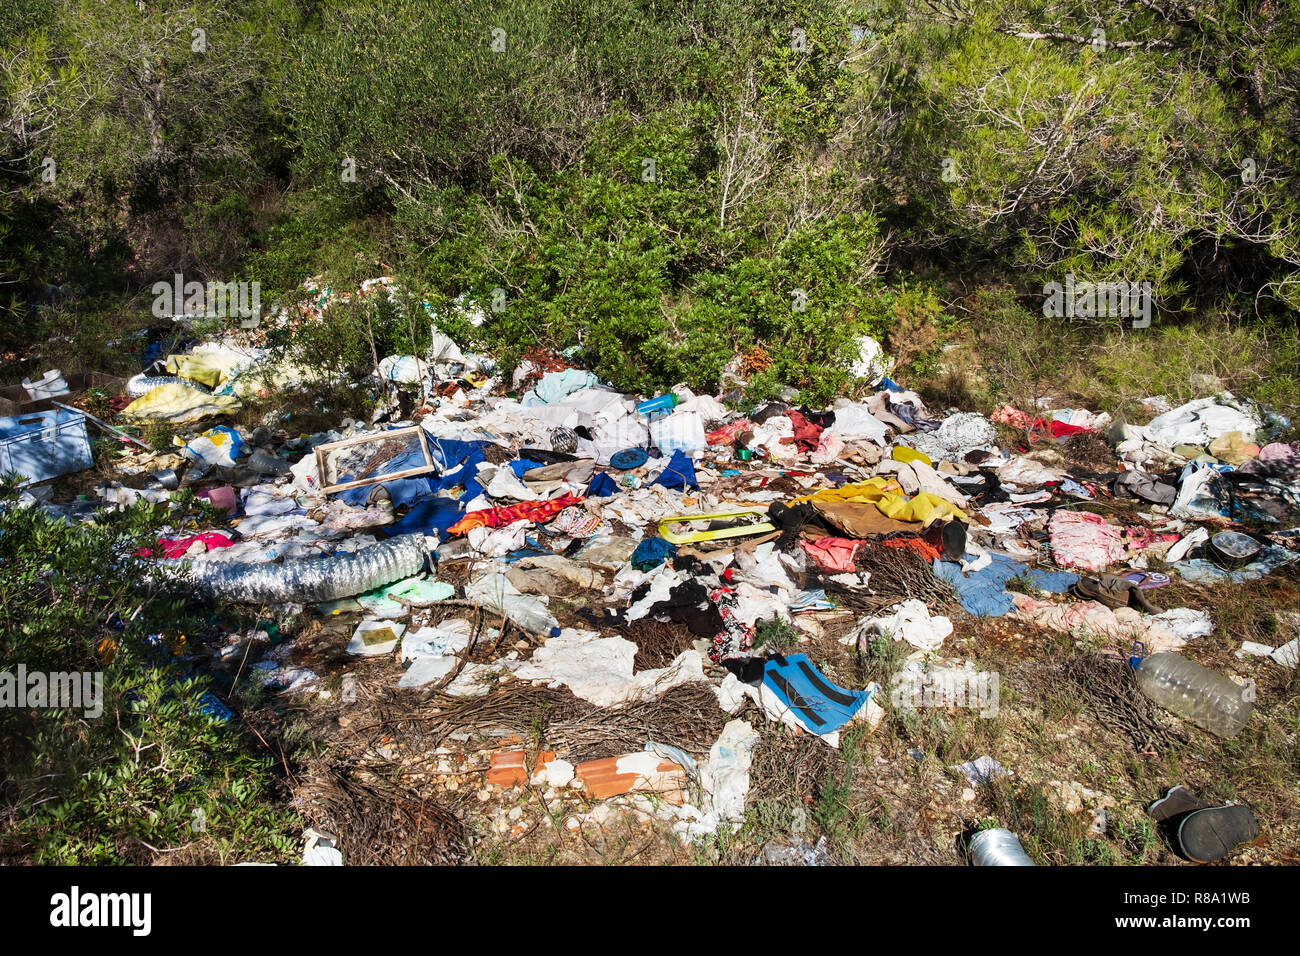 view of a pile of garbage illegally dumped in an open dump by a rural lane - Stock Image